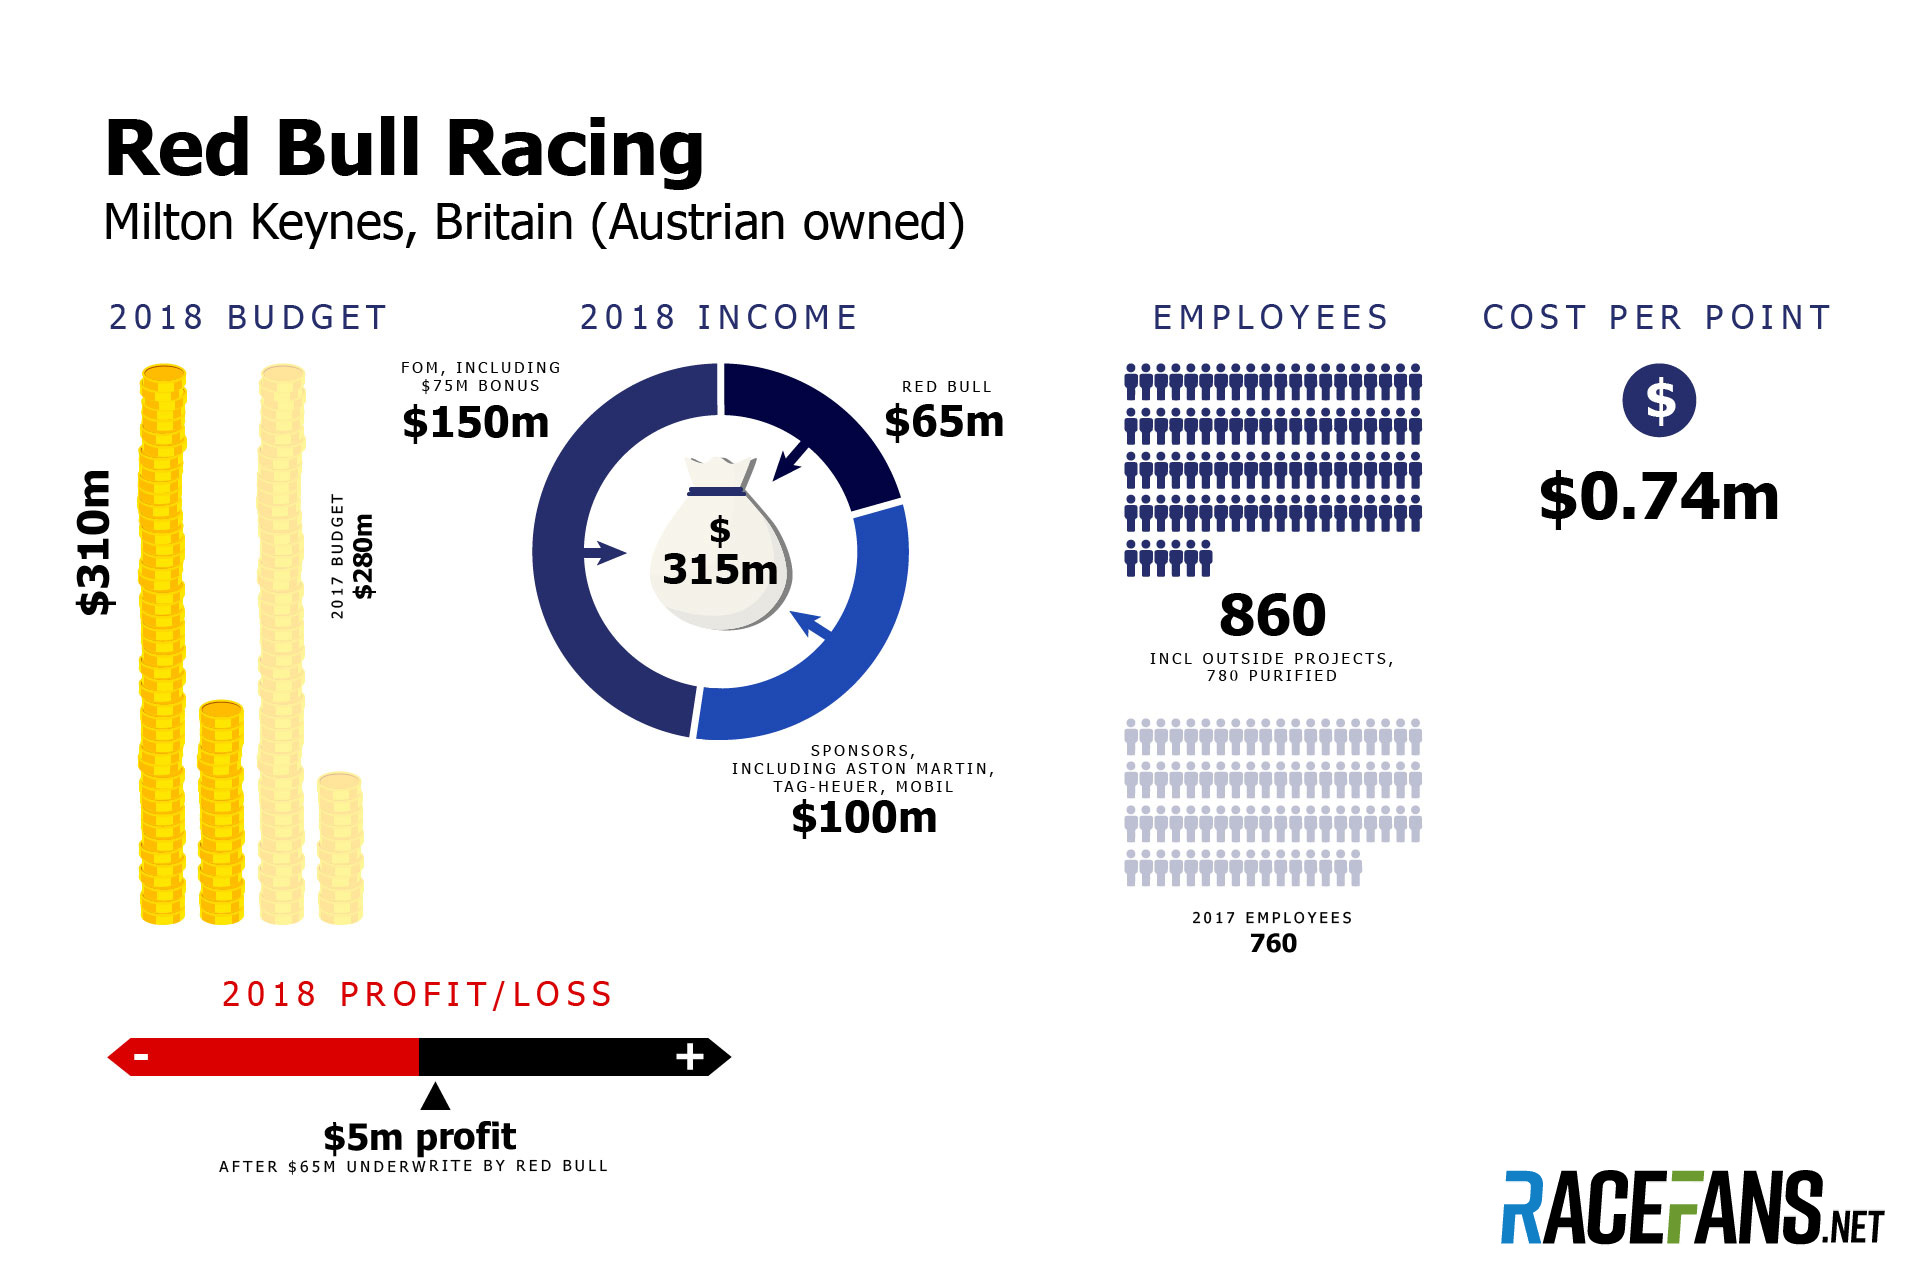 Red Bull F1 team budget 2018